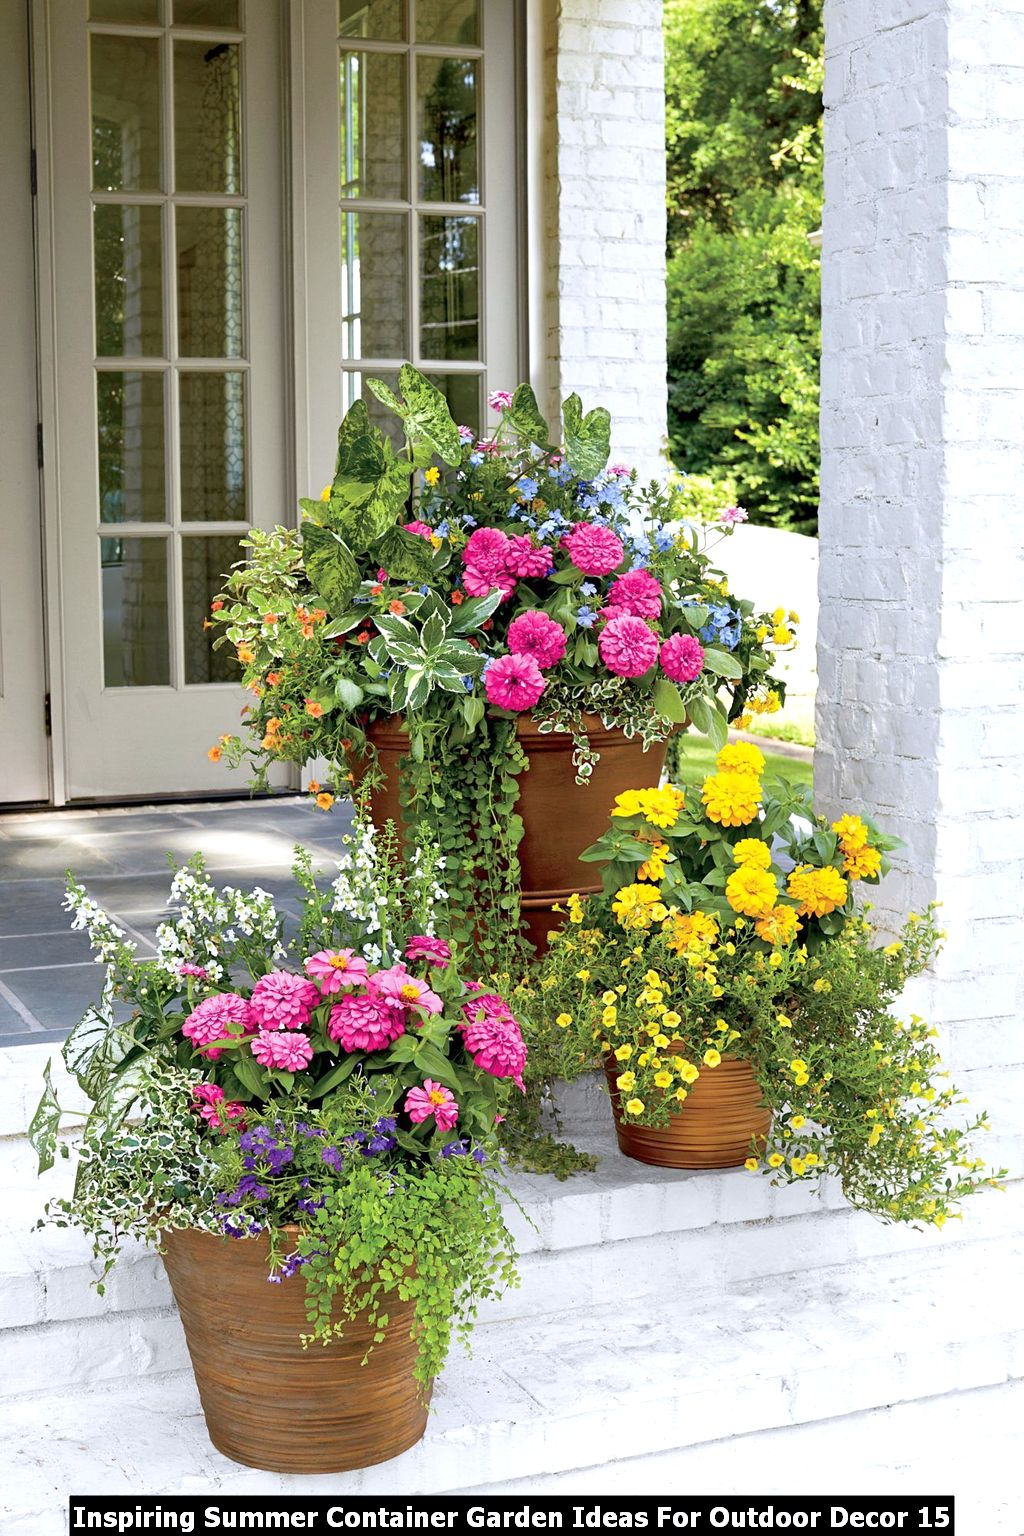 Inspiring Summer Container Garden Ideas For Outdoor Decor 15